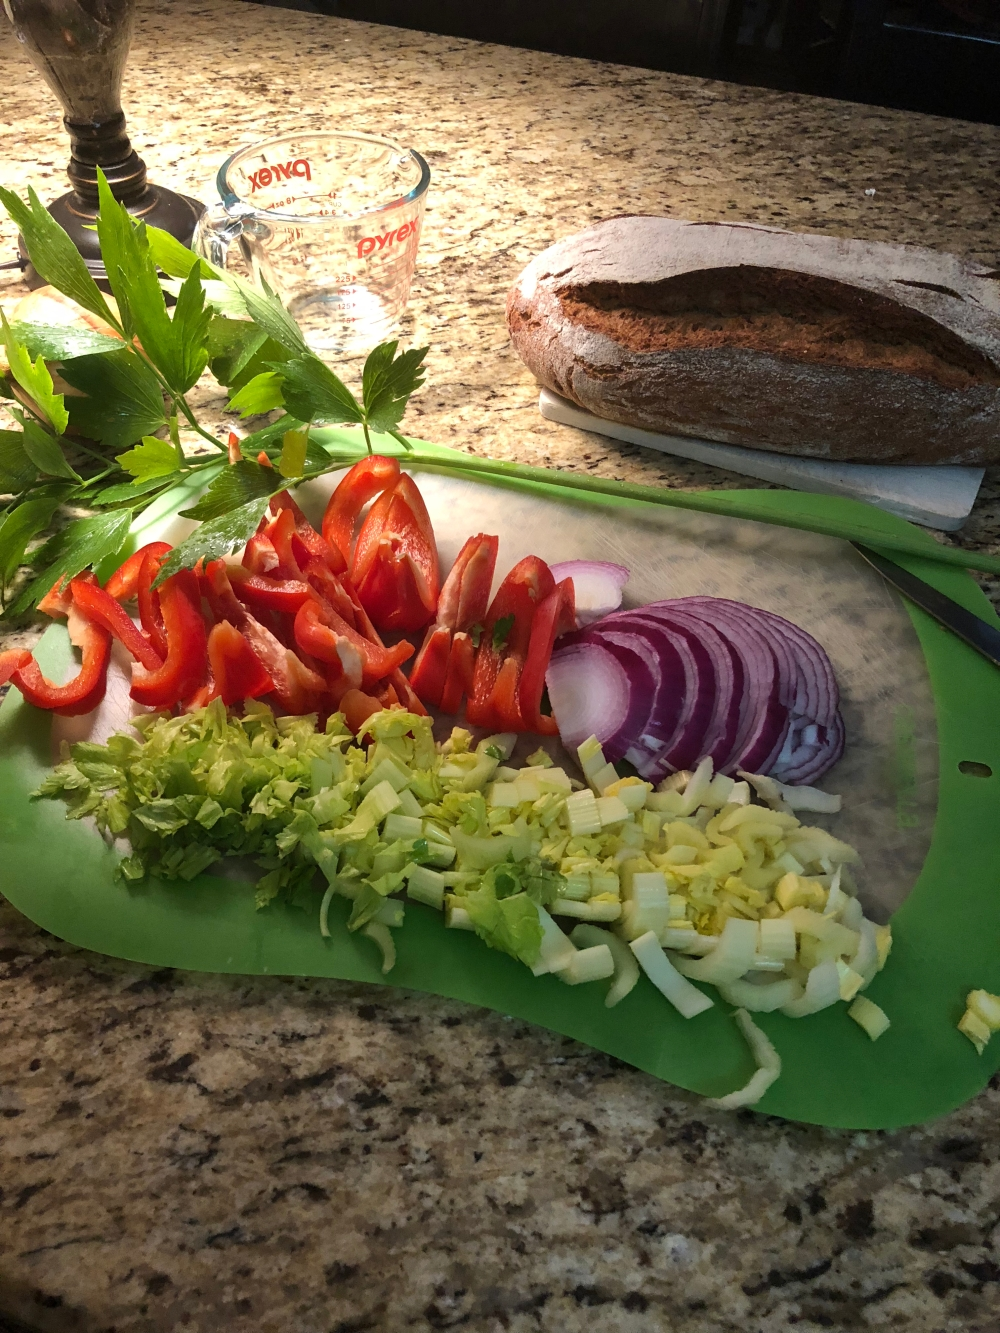 Diced celery, sliced onions, bell peppers, and a sprig of lovage, on a cutting mat. Measuring cup and freshly baked artisan bread in the background.